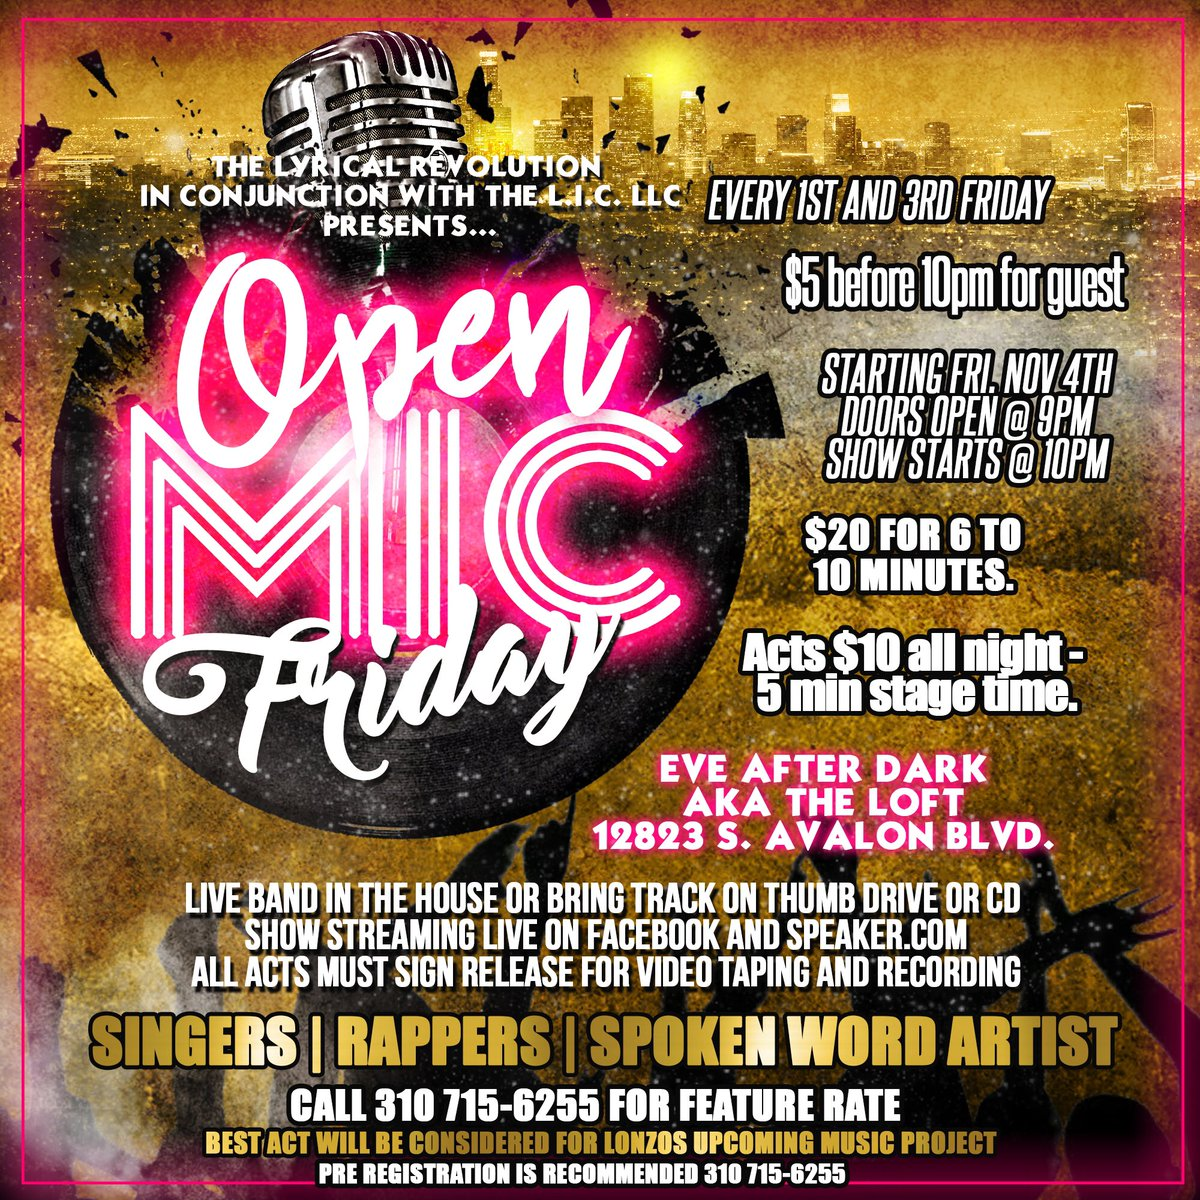 Tonight is the night! I hope to see you tonight at the #OpenMicFriday hosted by Special Guest @BishopLamont. Event:  https://www. facebook.com/events/1185031 638281096/?ti=icl &nbsp; … <br>http://pic.twitter.com/pYp5Uk9Nsm